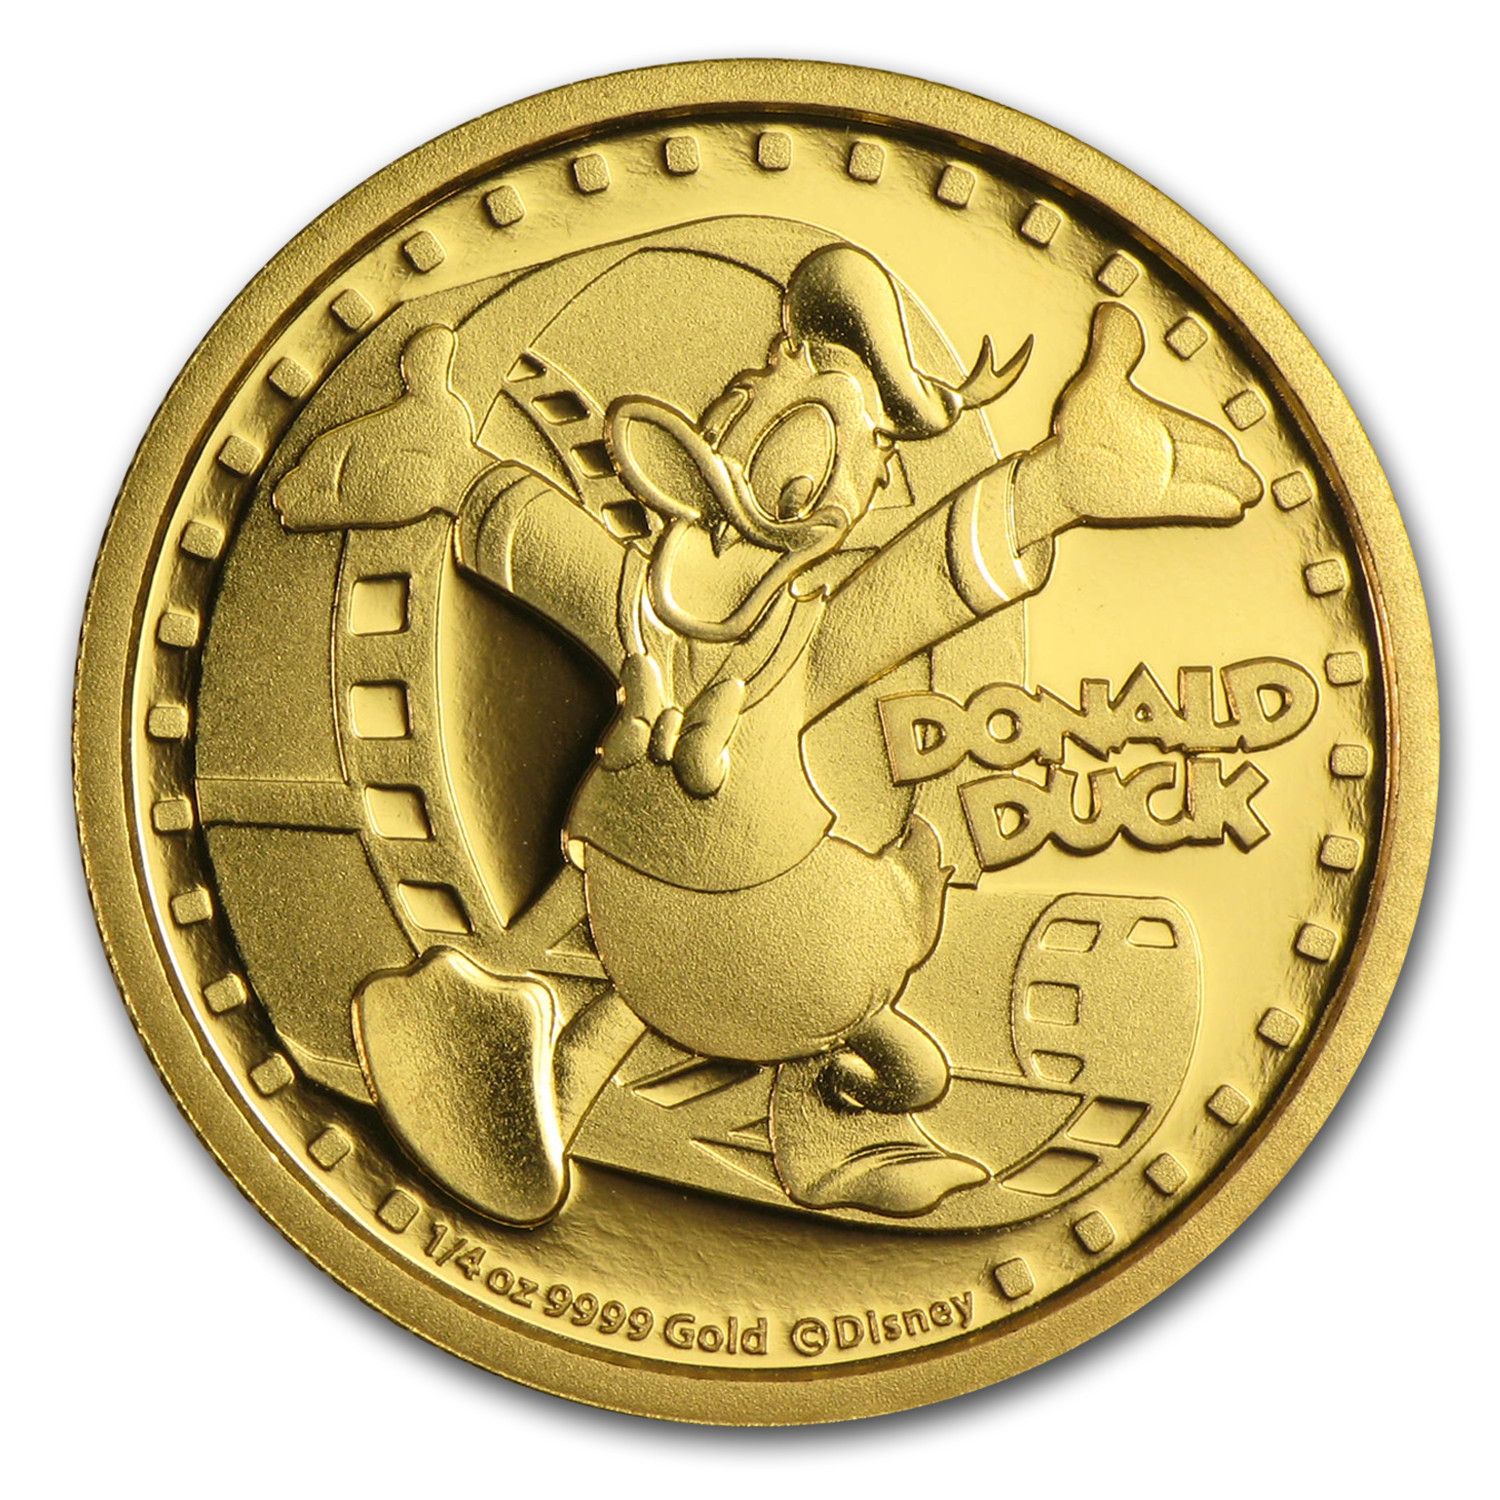 2014 1/4 oz Gold $25 Niue Disney Donald Duck